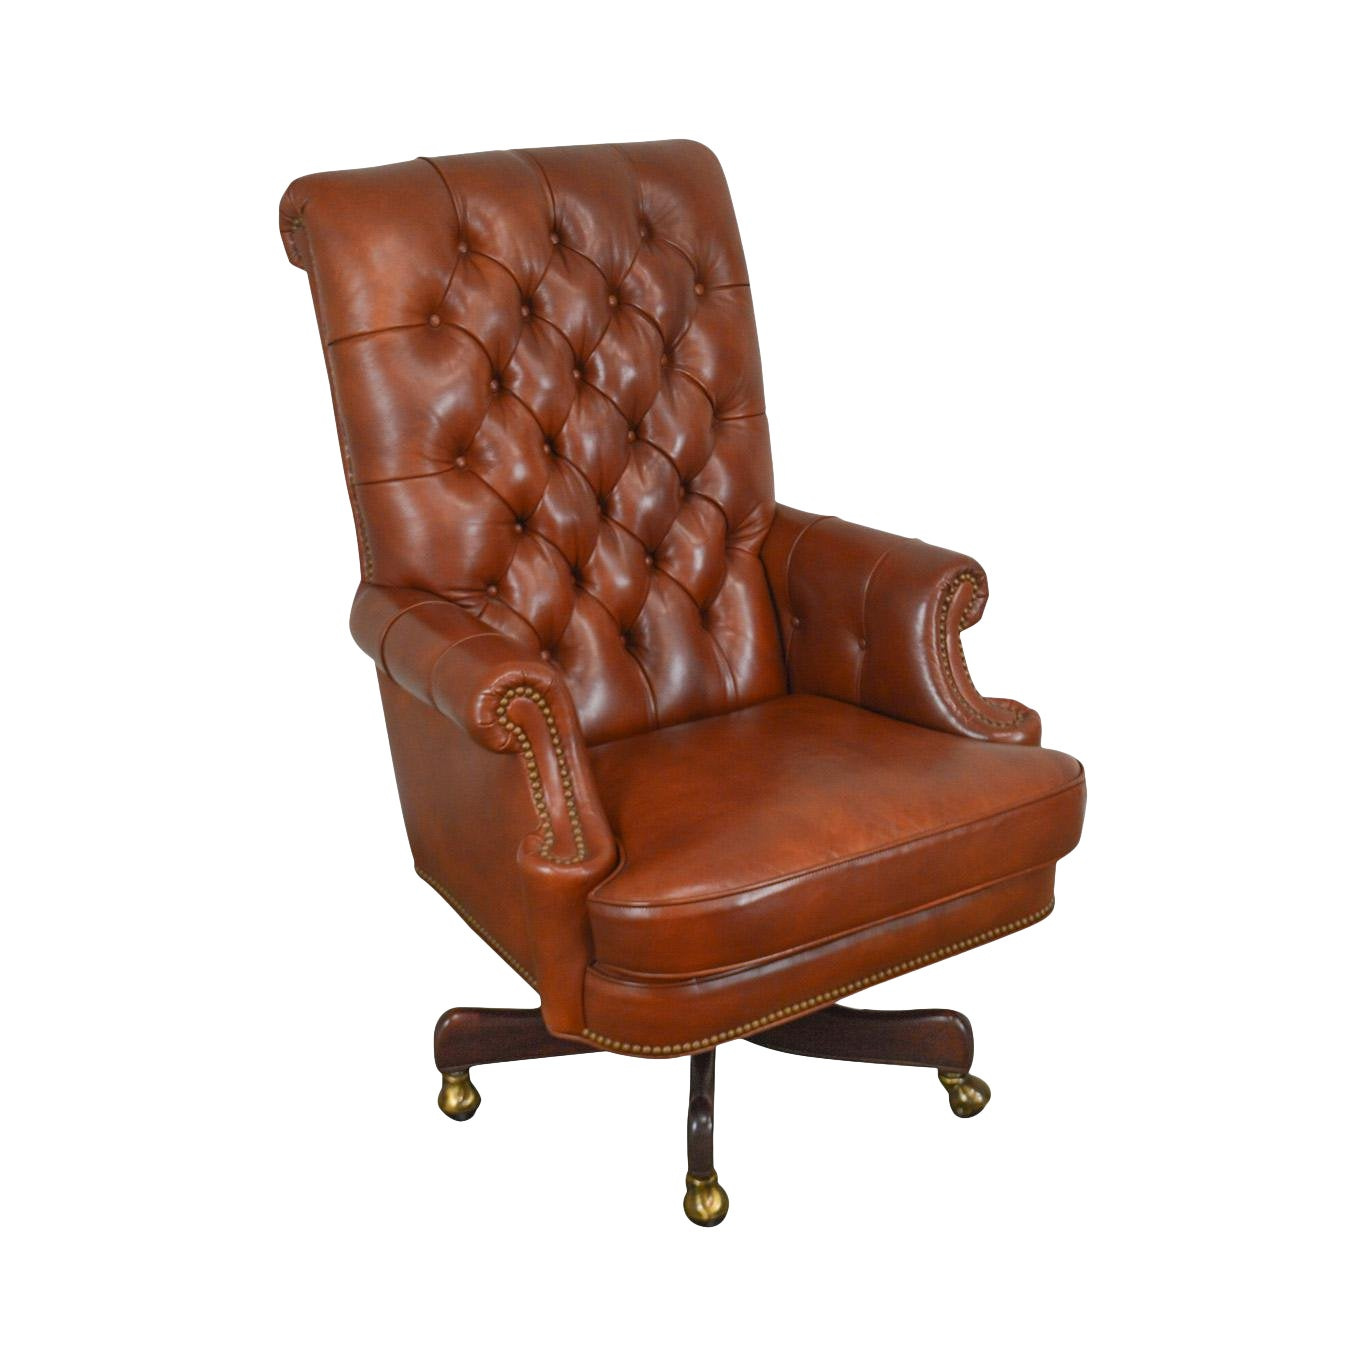 cec72a92af4 Hancock & Moore Tufted Brown Leather Executive Desk Chair